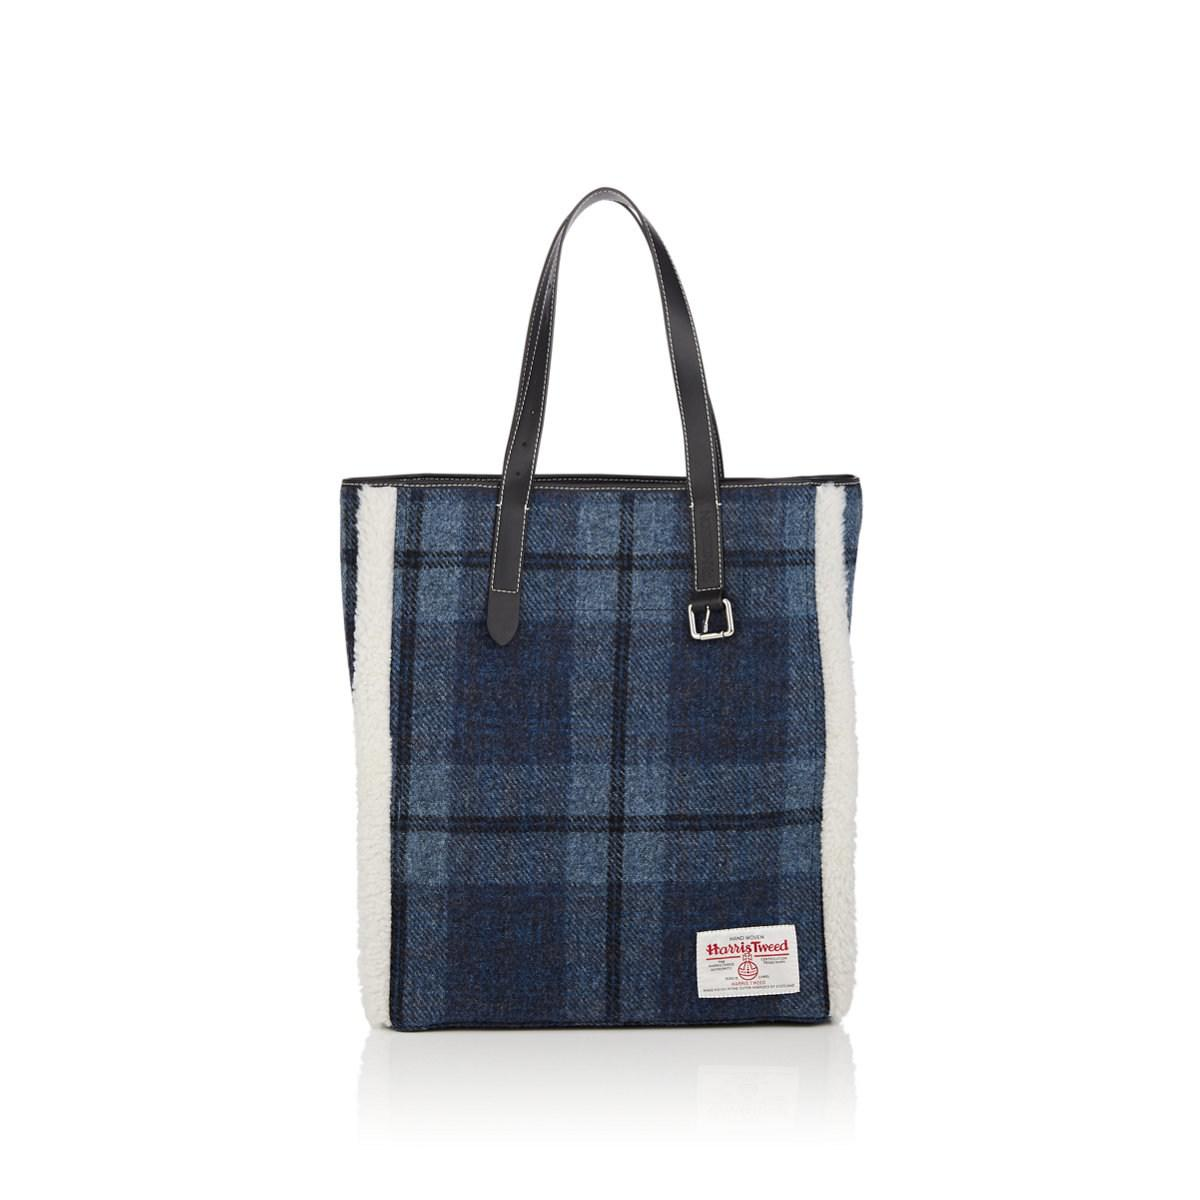 215407154c5a Lyst - JW Anderson Shearling-trimmed Plaid Wool Tote Bag in Blue